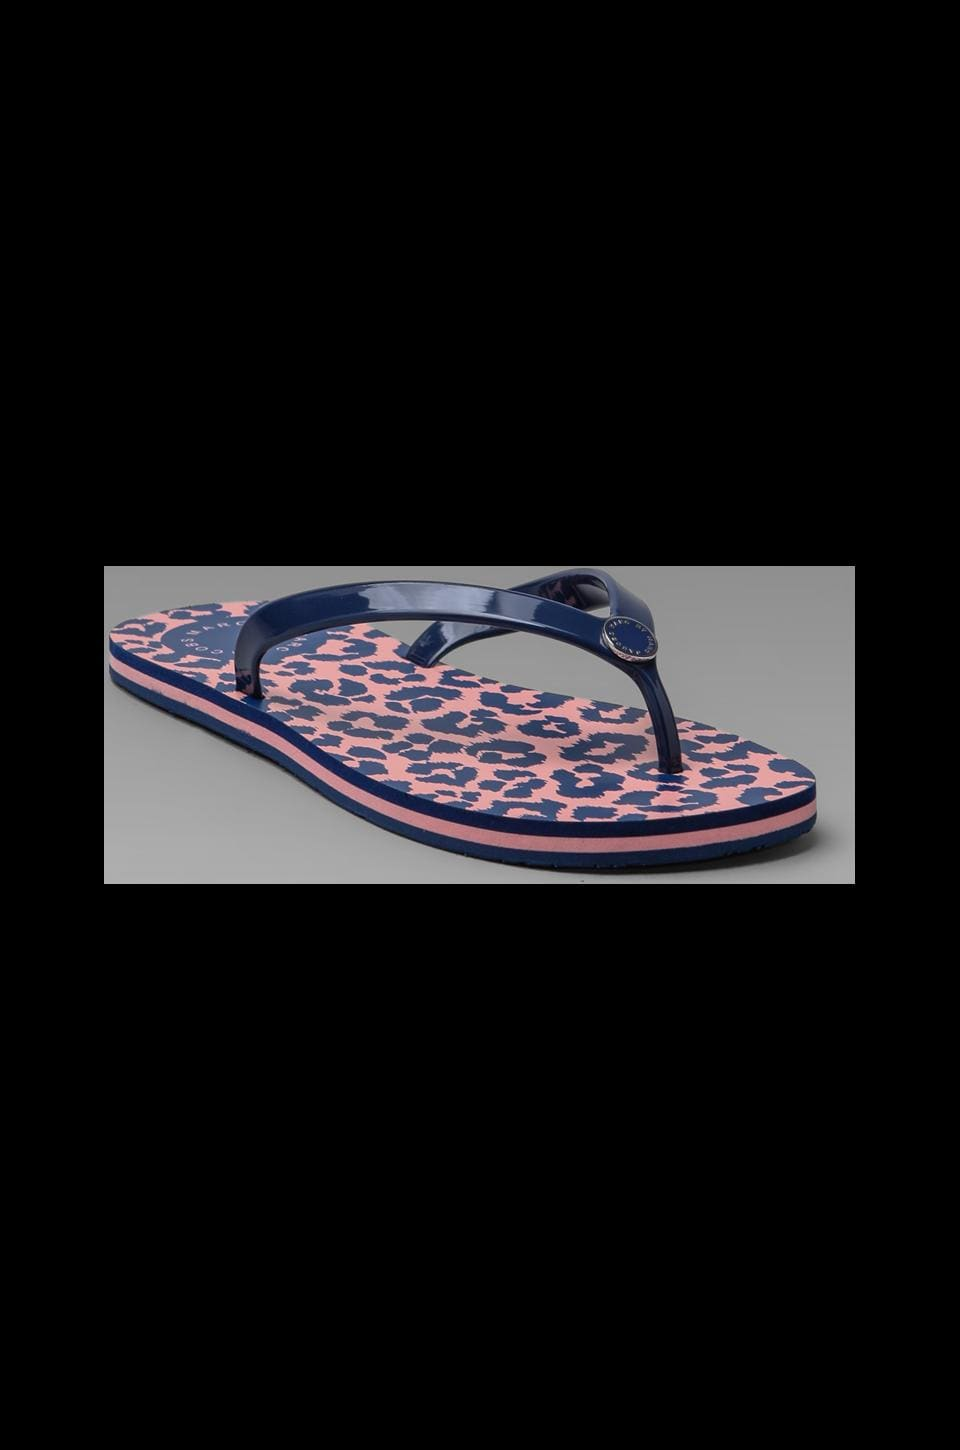 Marc by Marc Jacobs Rita the Cheetah Rubber Print Flip Flop in Blue Multi